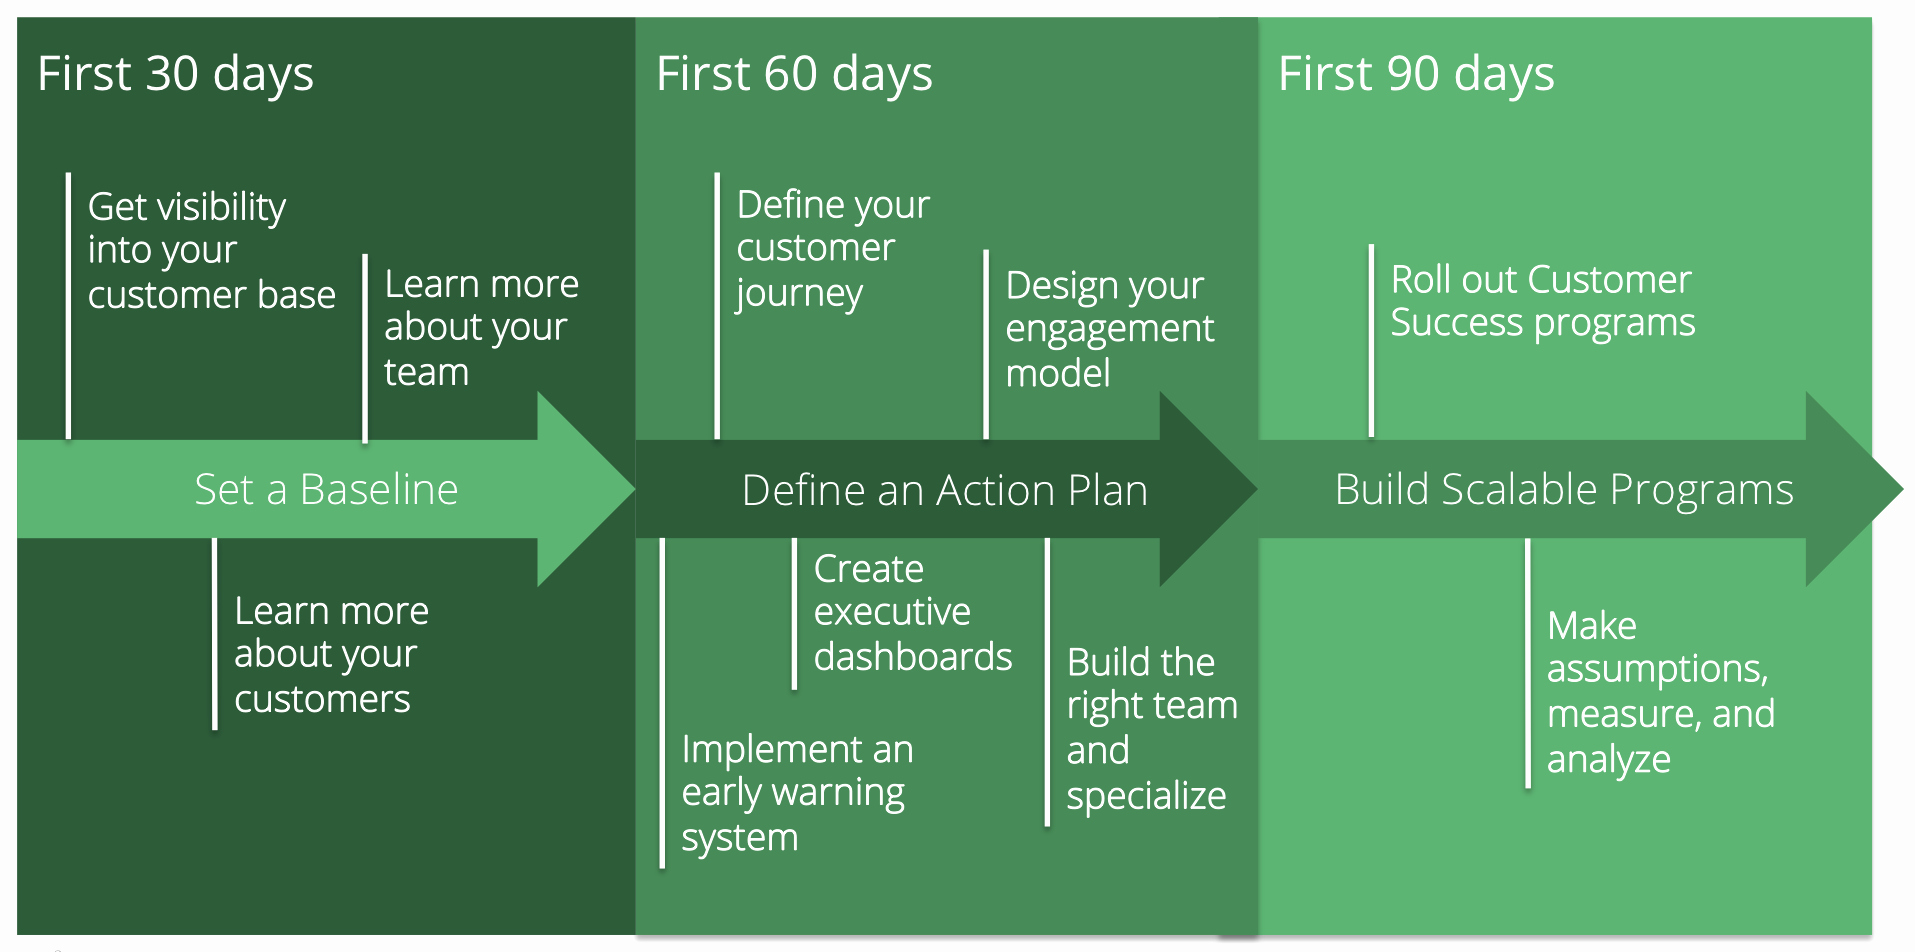 90 Day Action Plan Templates Inspirational Your 90 Day Customer Success Plan